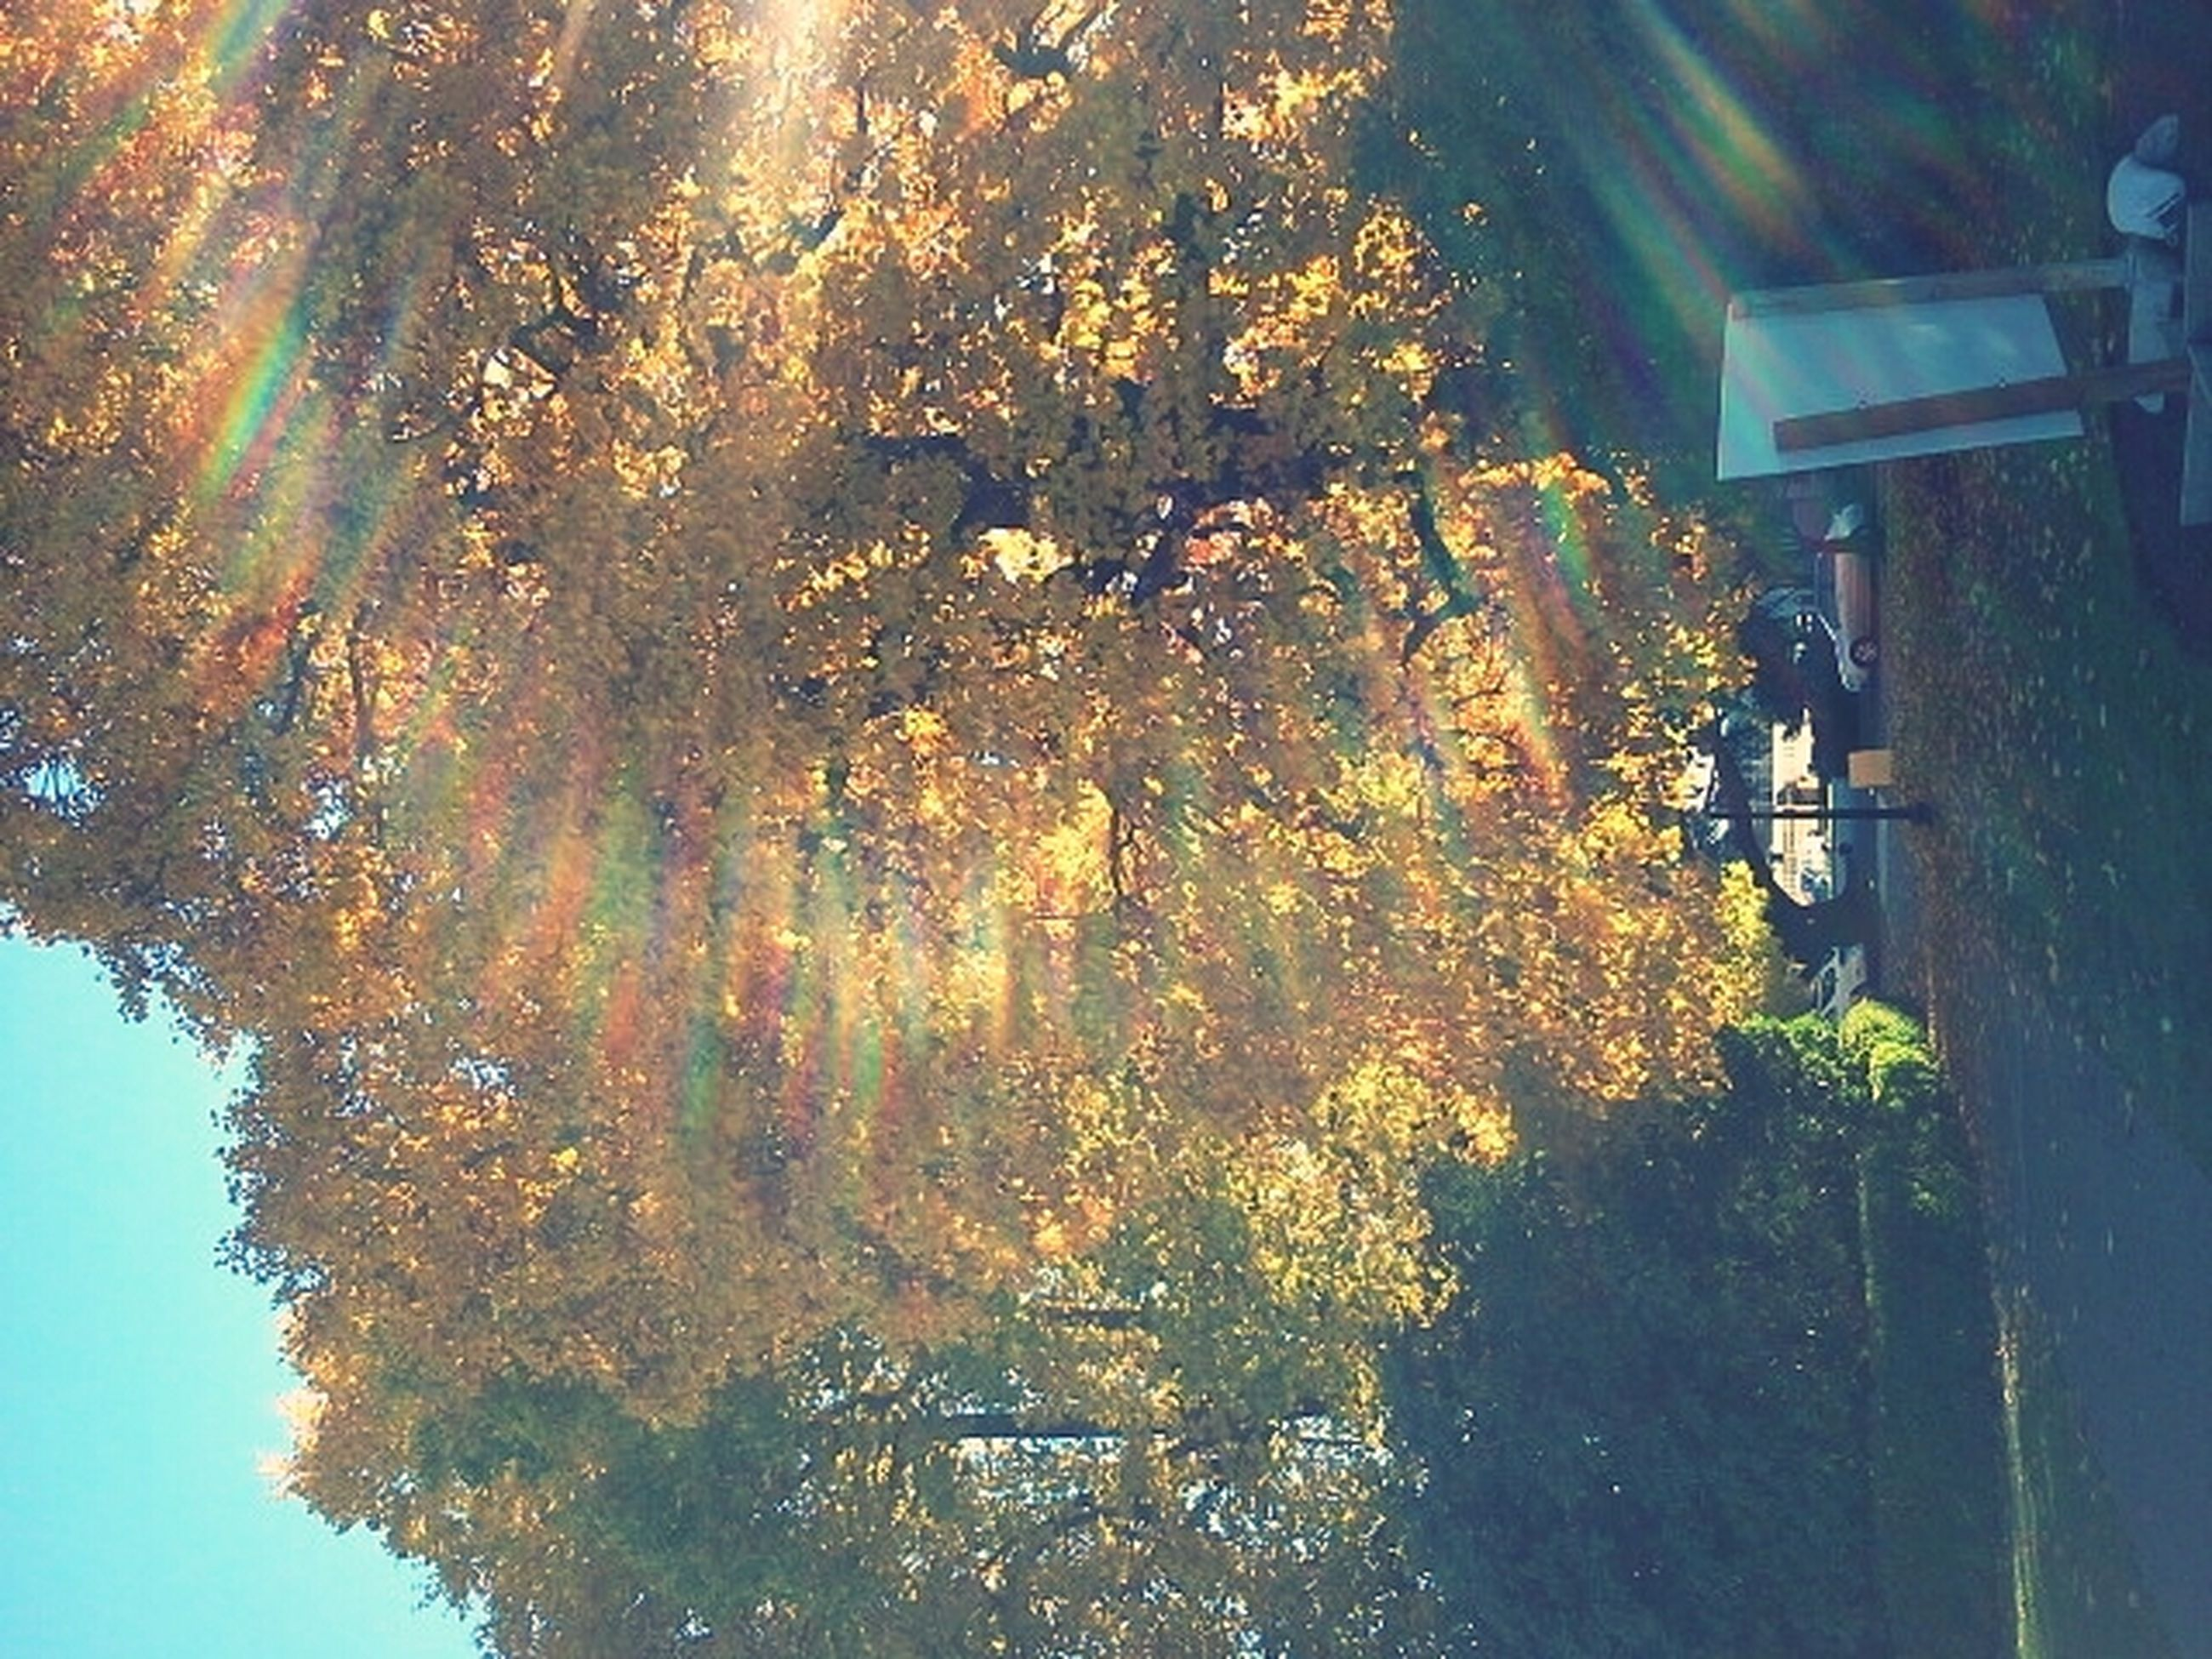 tree, growth, branch, building exterior, sunlight, nature, built structure, beauty in nature, low angle view, architecture, season, tranquility, reflection, outdoors, no people, sky, water, autumn, house, leaf